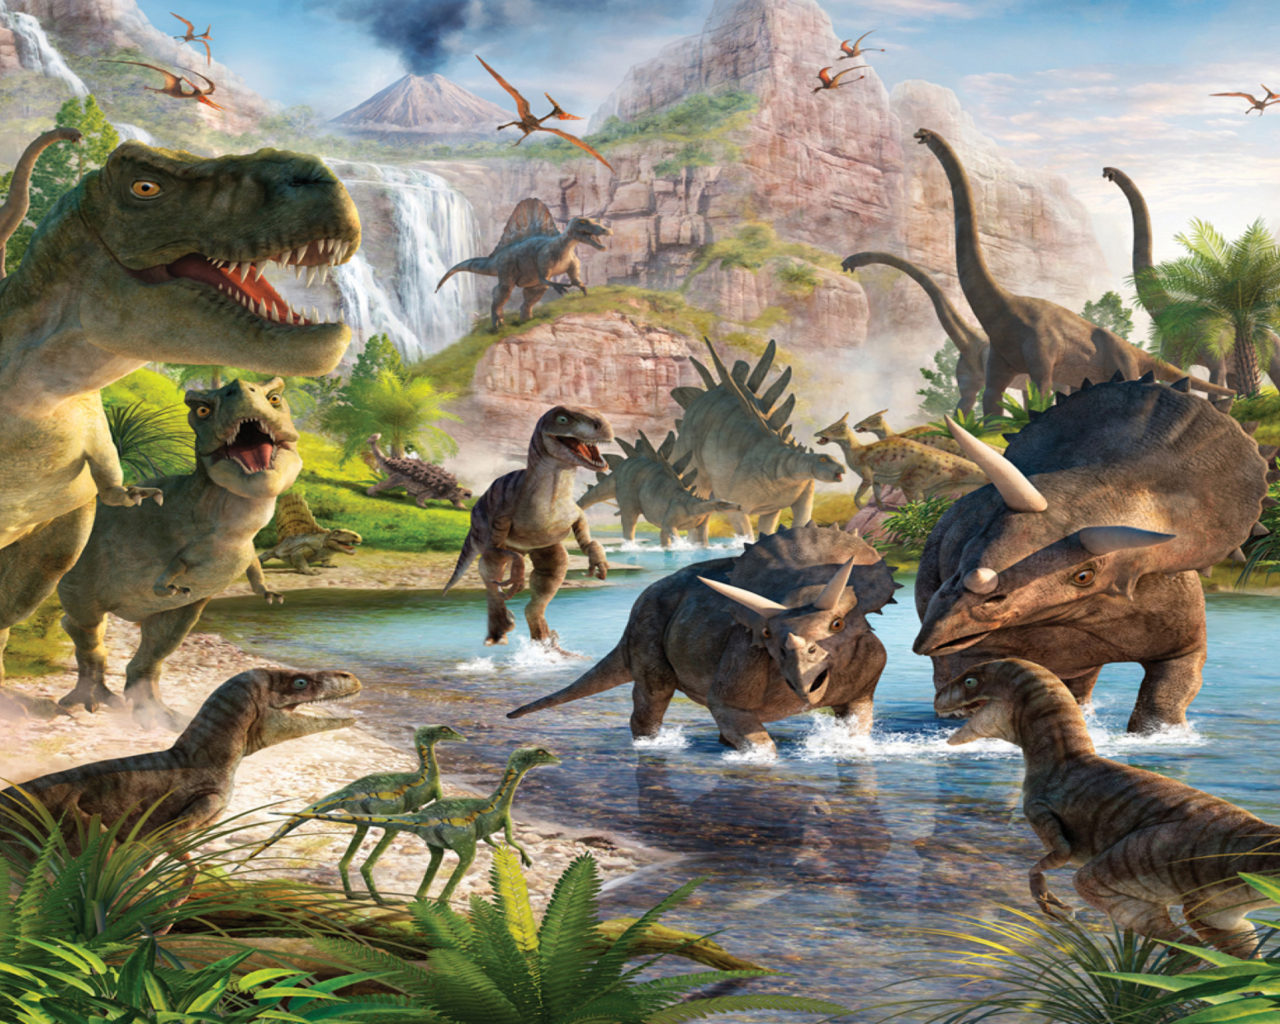 Free Download 3d Wallpaper For Android Tablet Dinosaurs Wallpapers For Desktop 11686 Full Hd Wallpaper